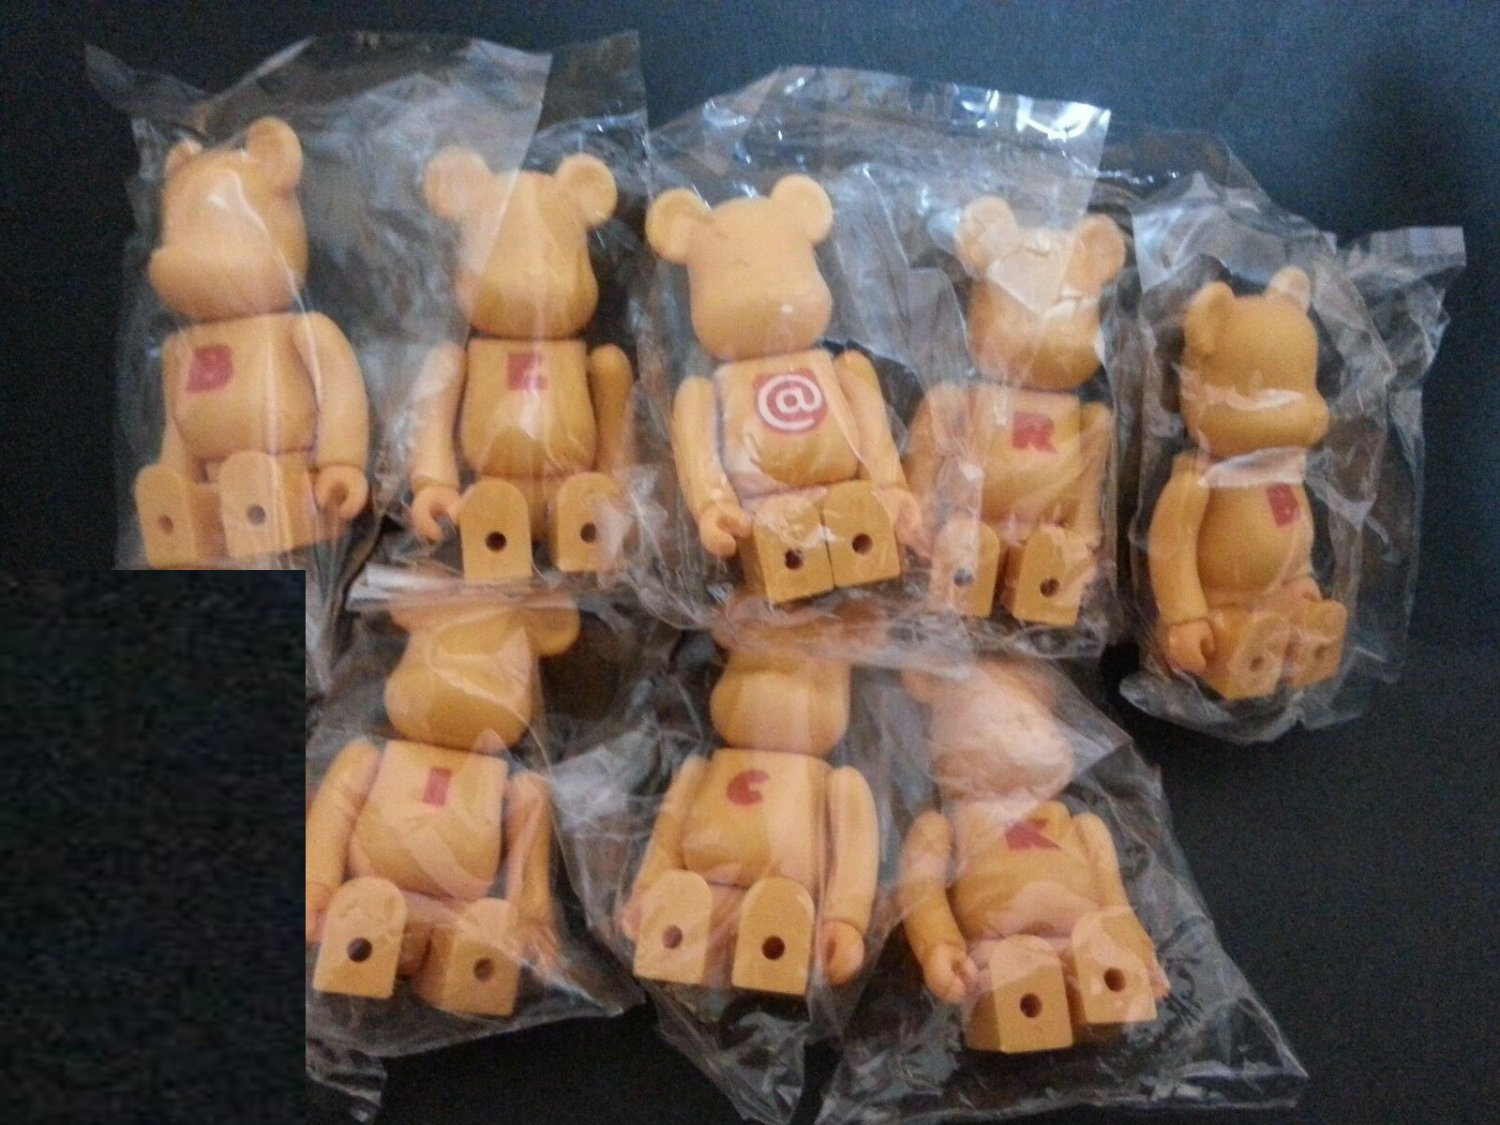 Medicom Toy 2001 Be@rbrick 100% Bearbrick Series 2 Basic Action Figure S2 8 Pcs Set collectible